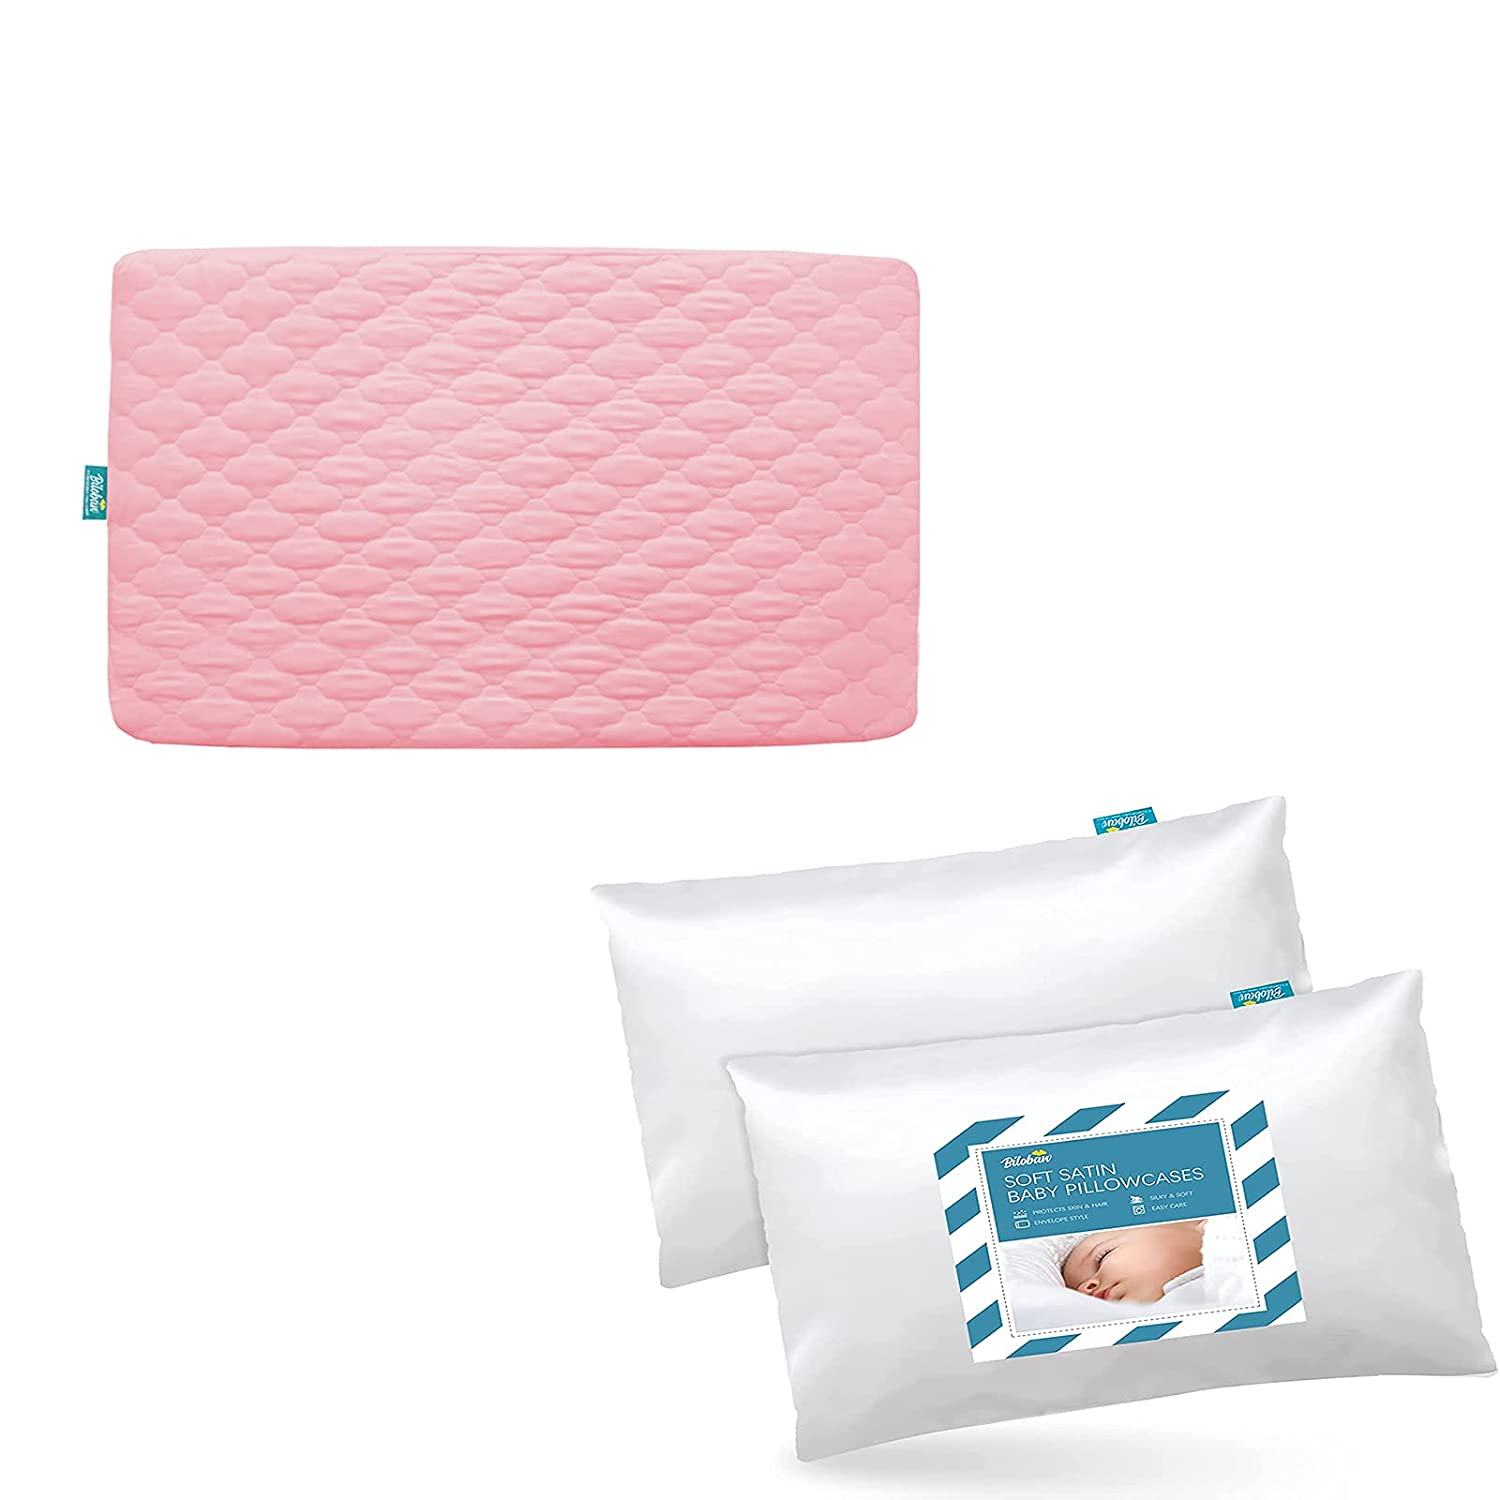 Pack At the price n Online limited product Play Sheet Quilted Waterproof Satin K Protector with Pink